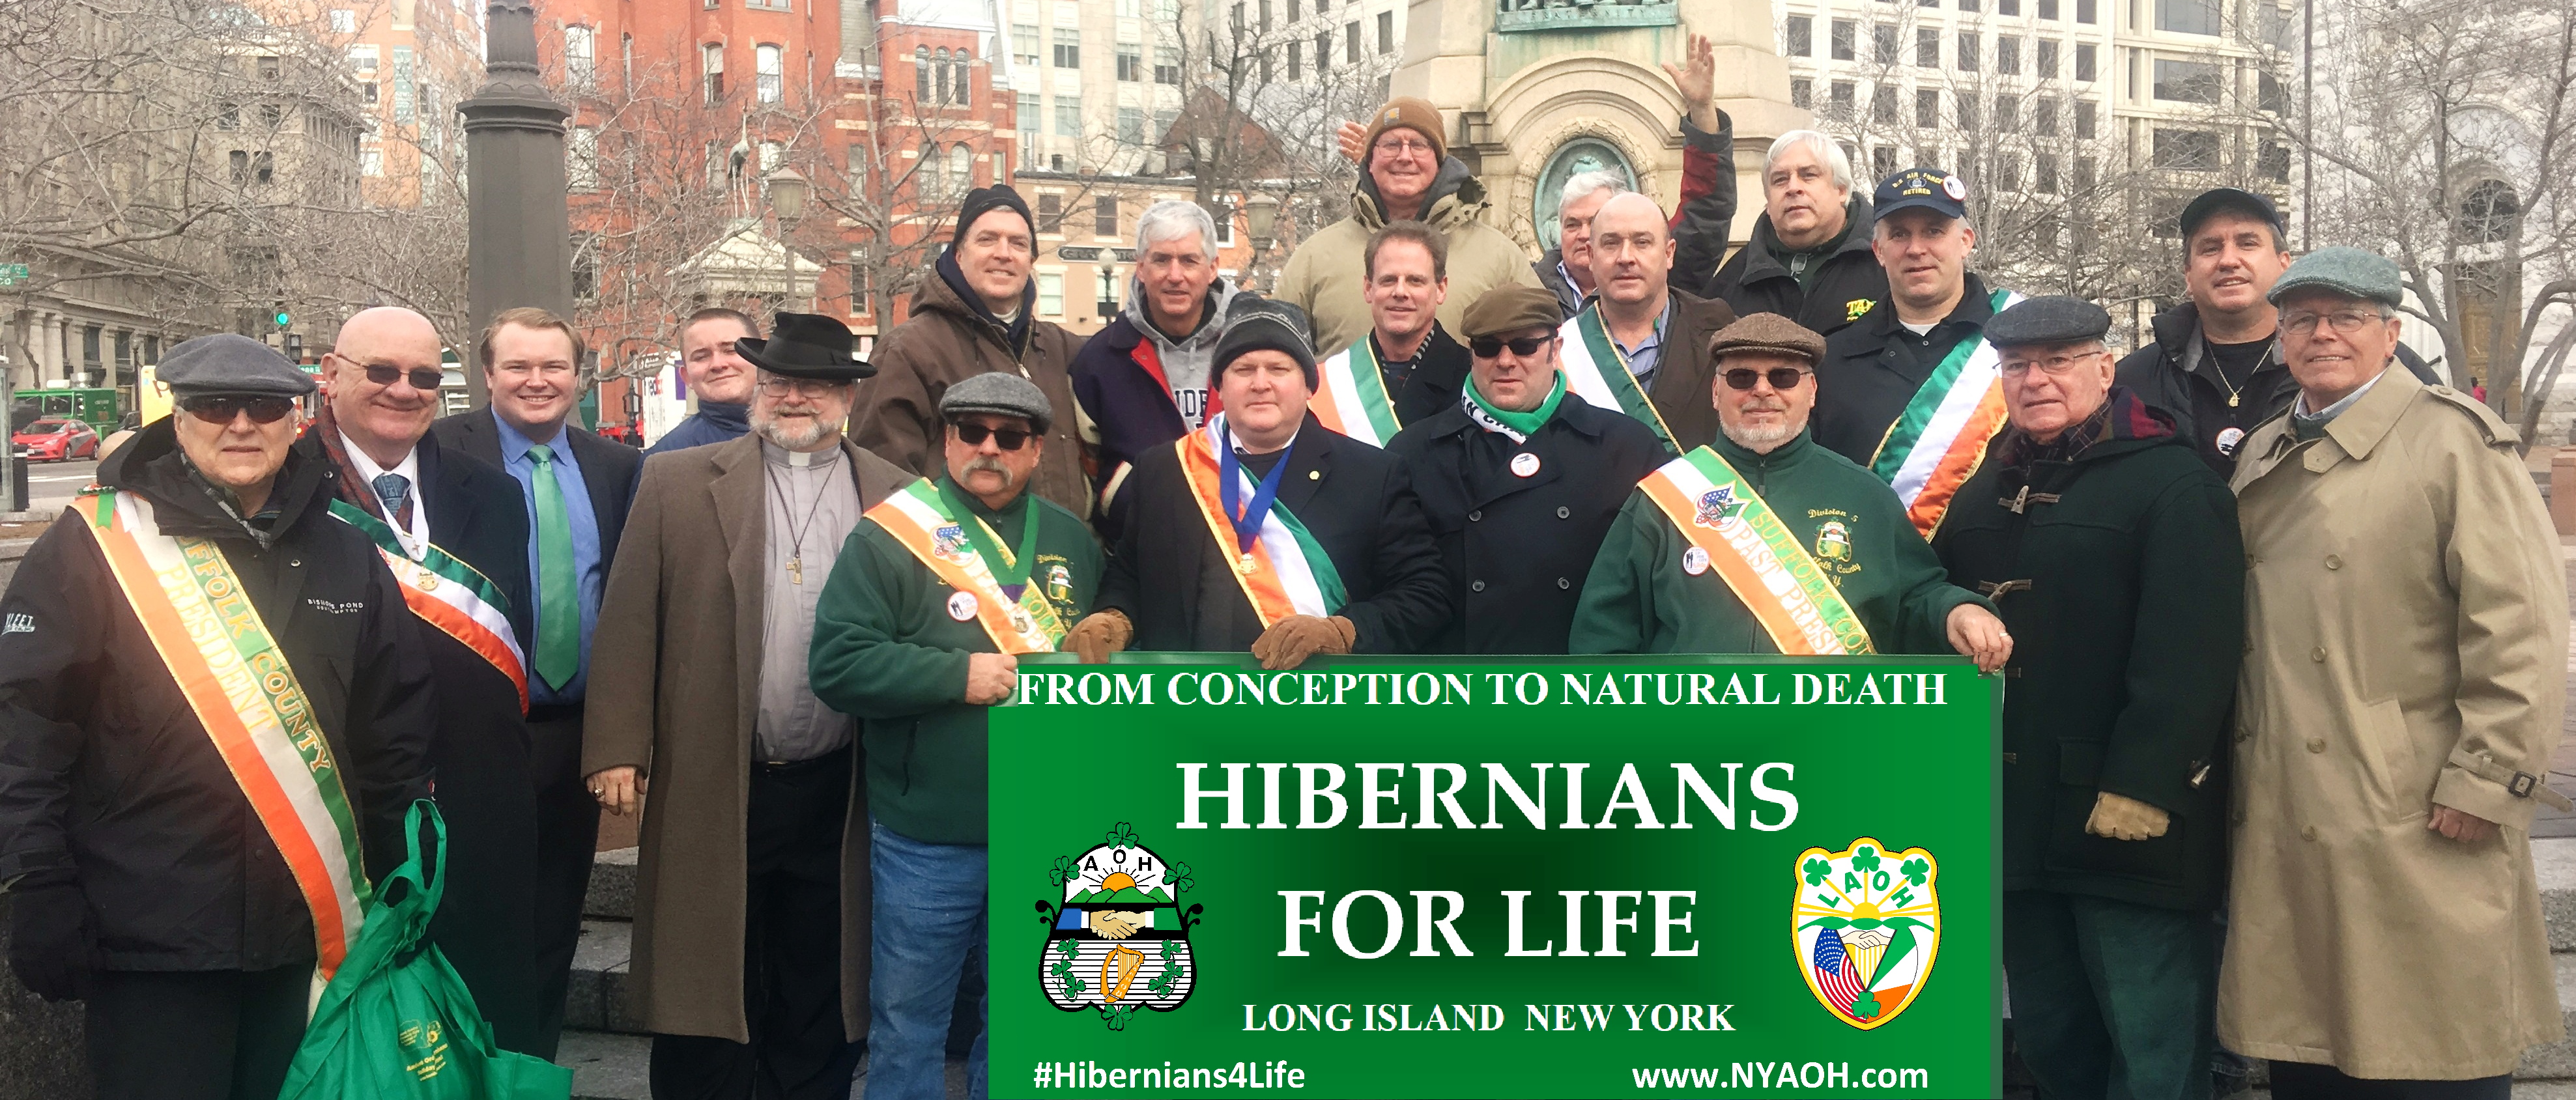 2017 March for Life Washington DC Hibernians District 6 Bus from NY